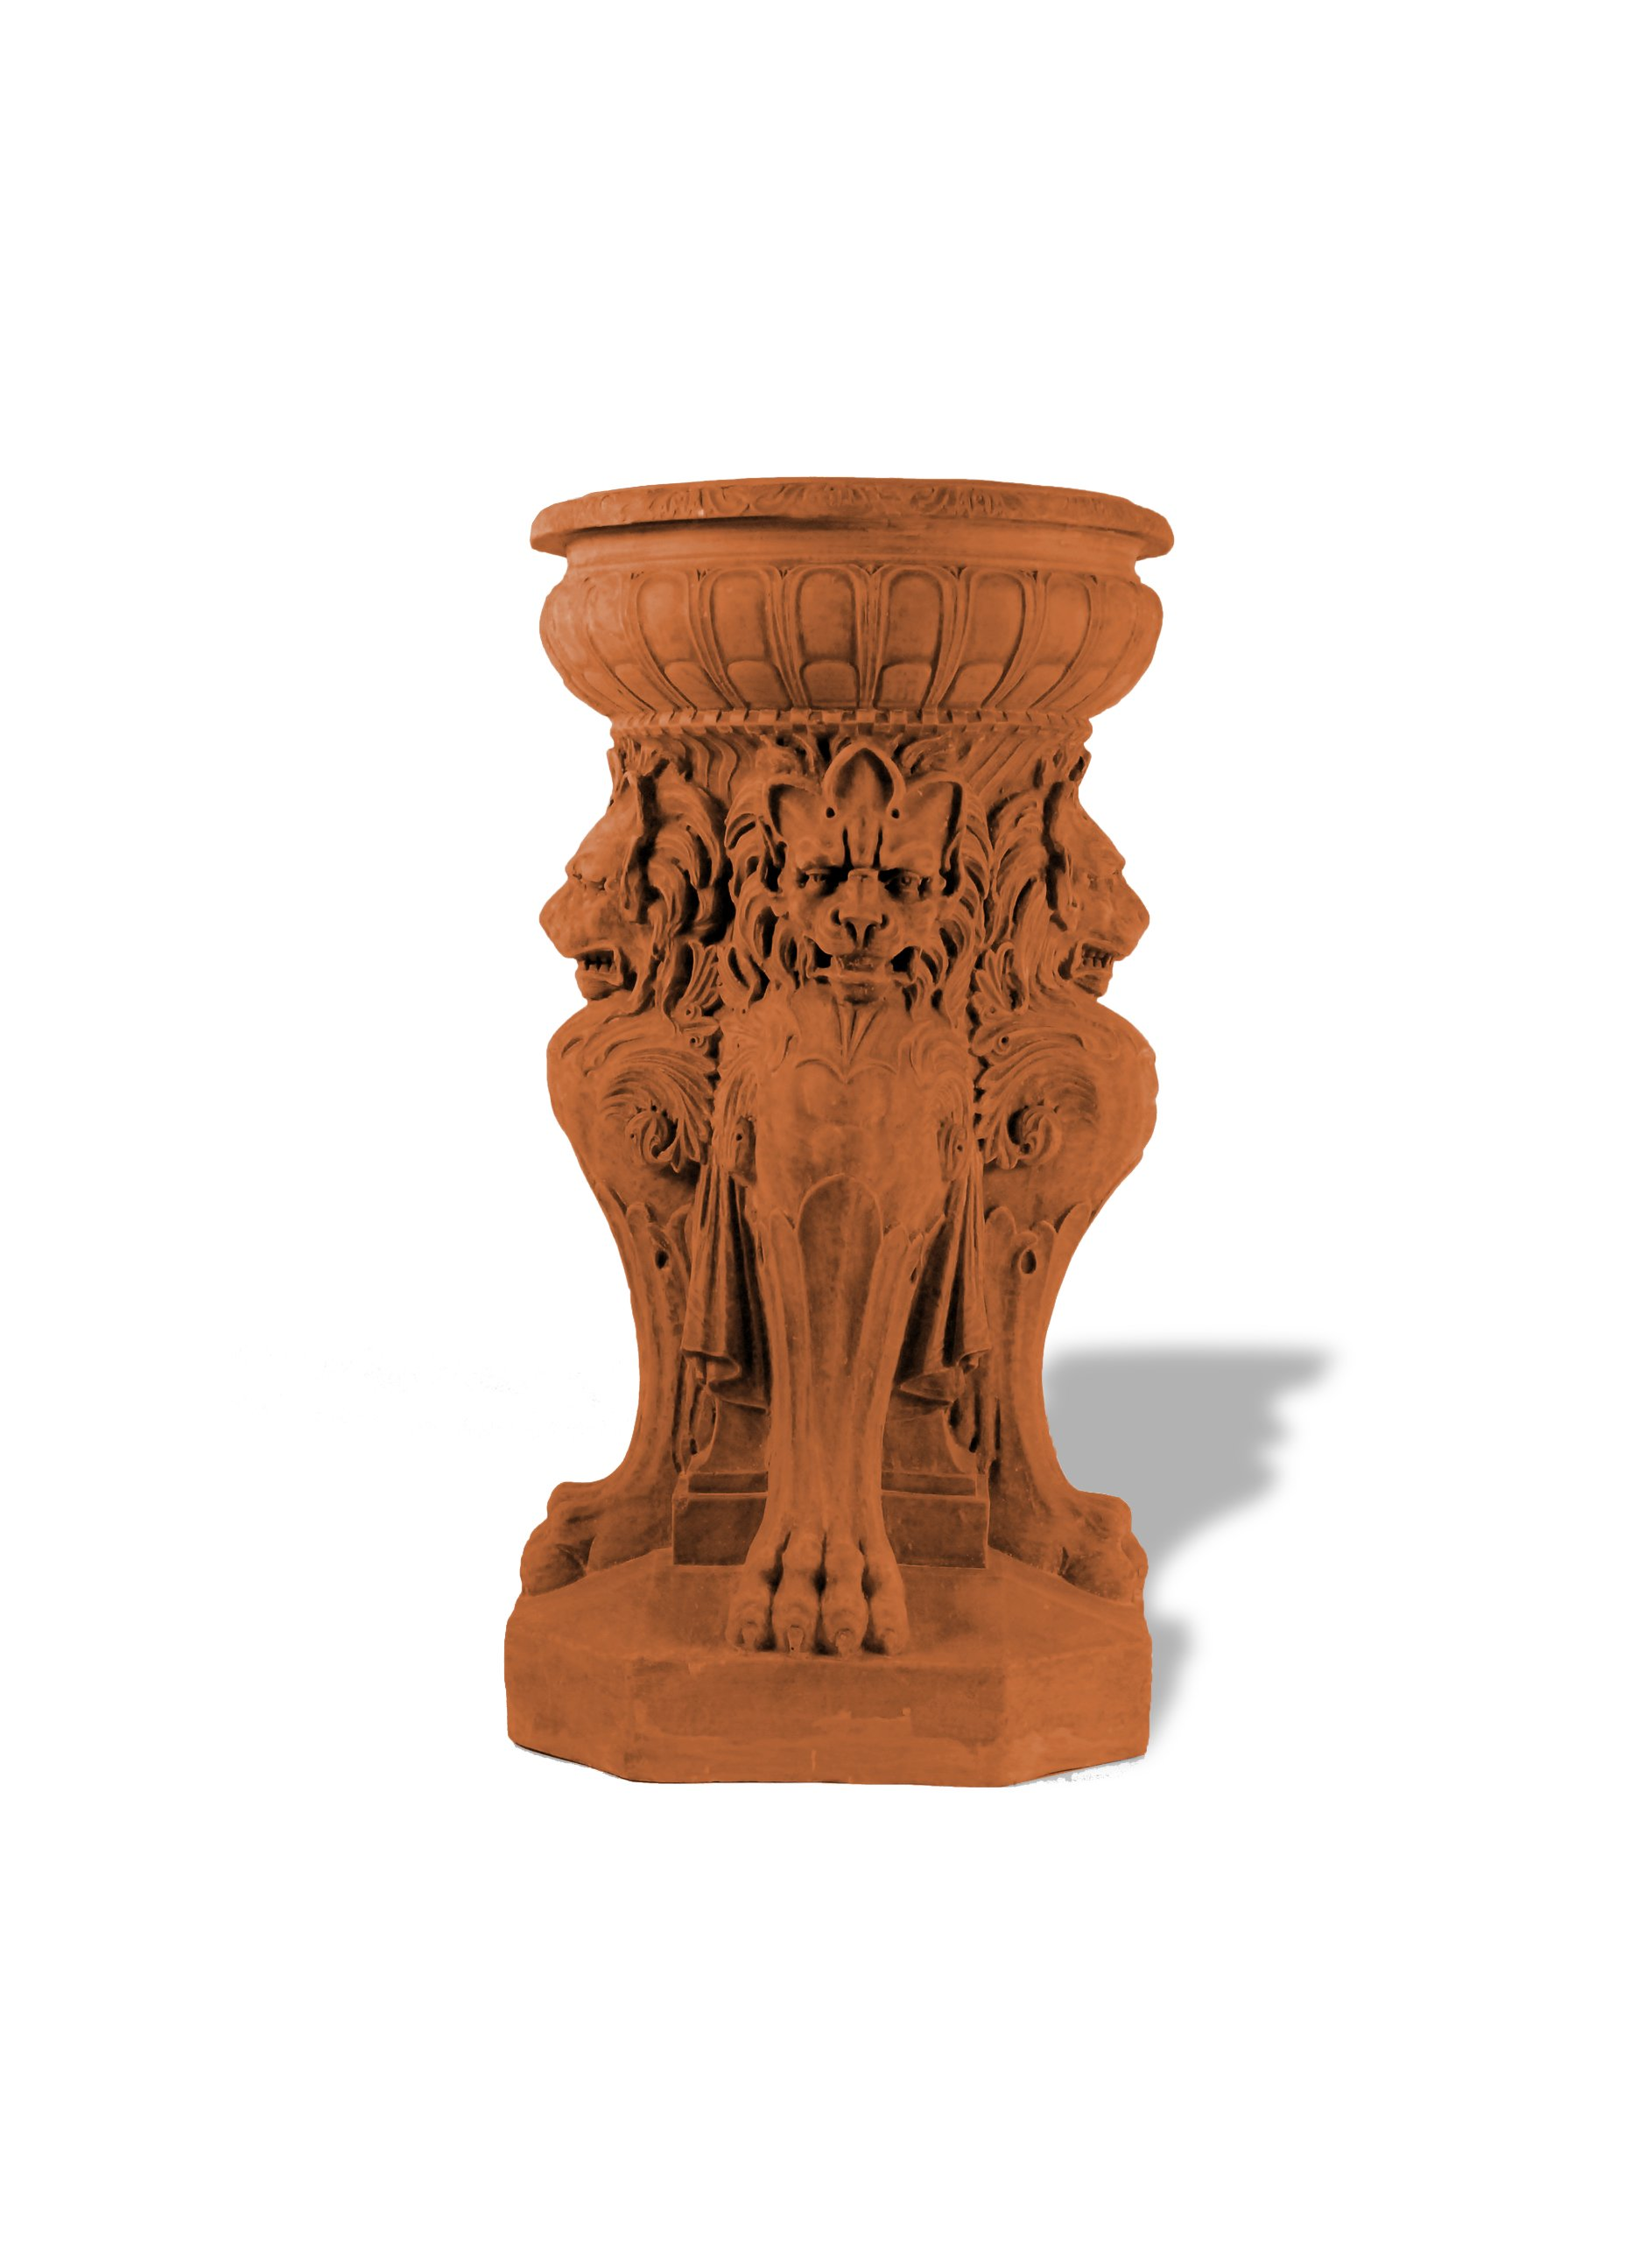 Amedeo Design ResinStone 1001-7T Victorian Lion Fountain / Urn, 18 by 18 by 36-Inch, Terra Cotta